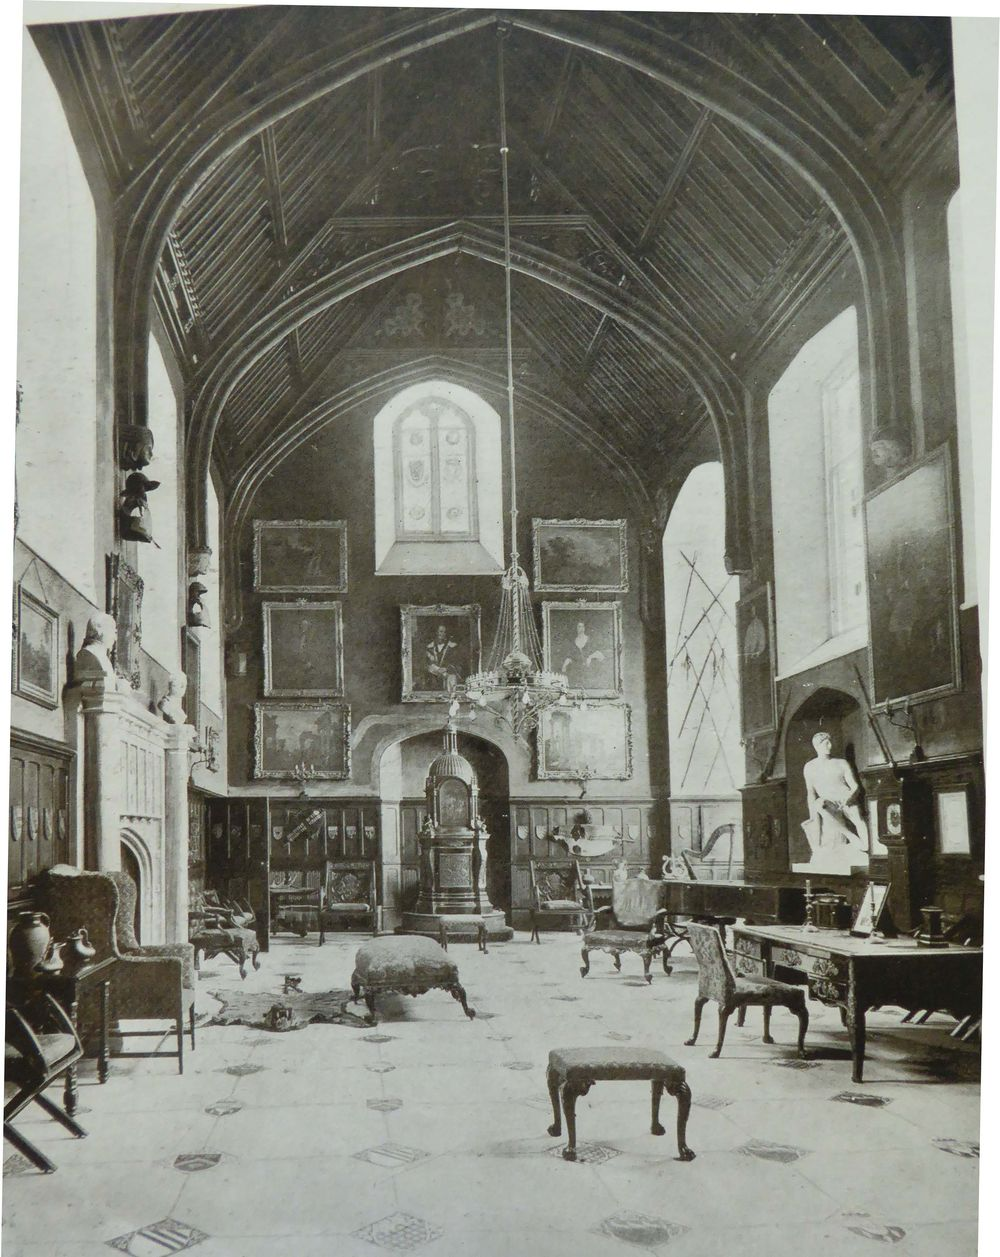 The Great Hall at Horsley Towers, late 19th Century, showing lots 10 and 80 in situ.  Image courtesy of Surrey History Centre.